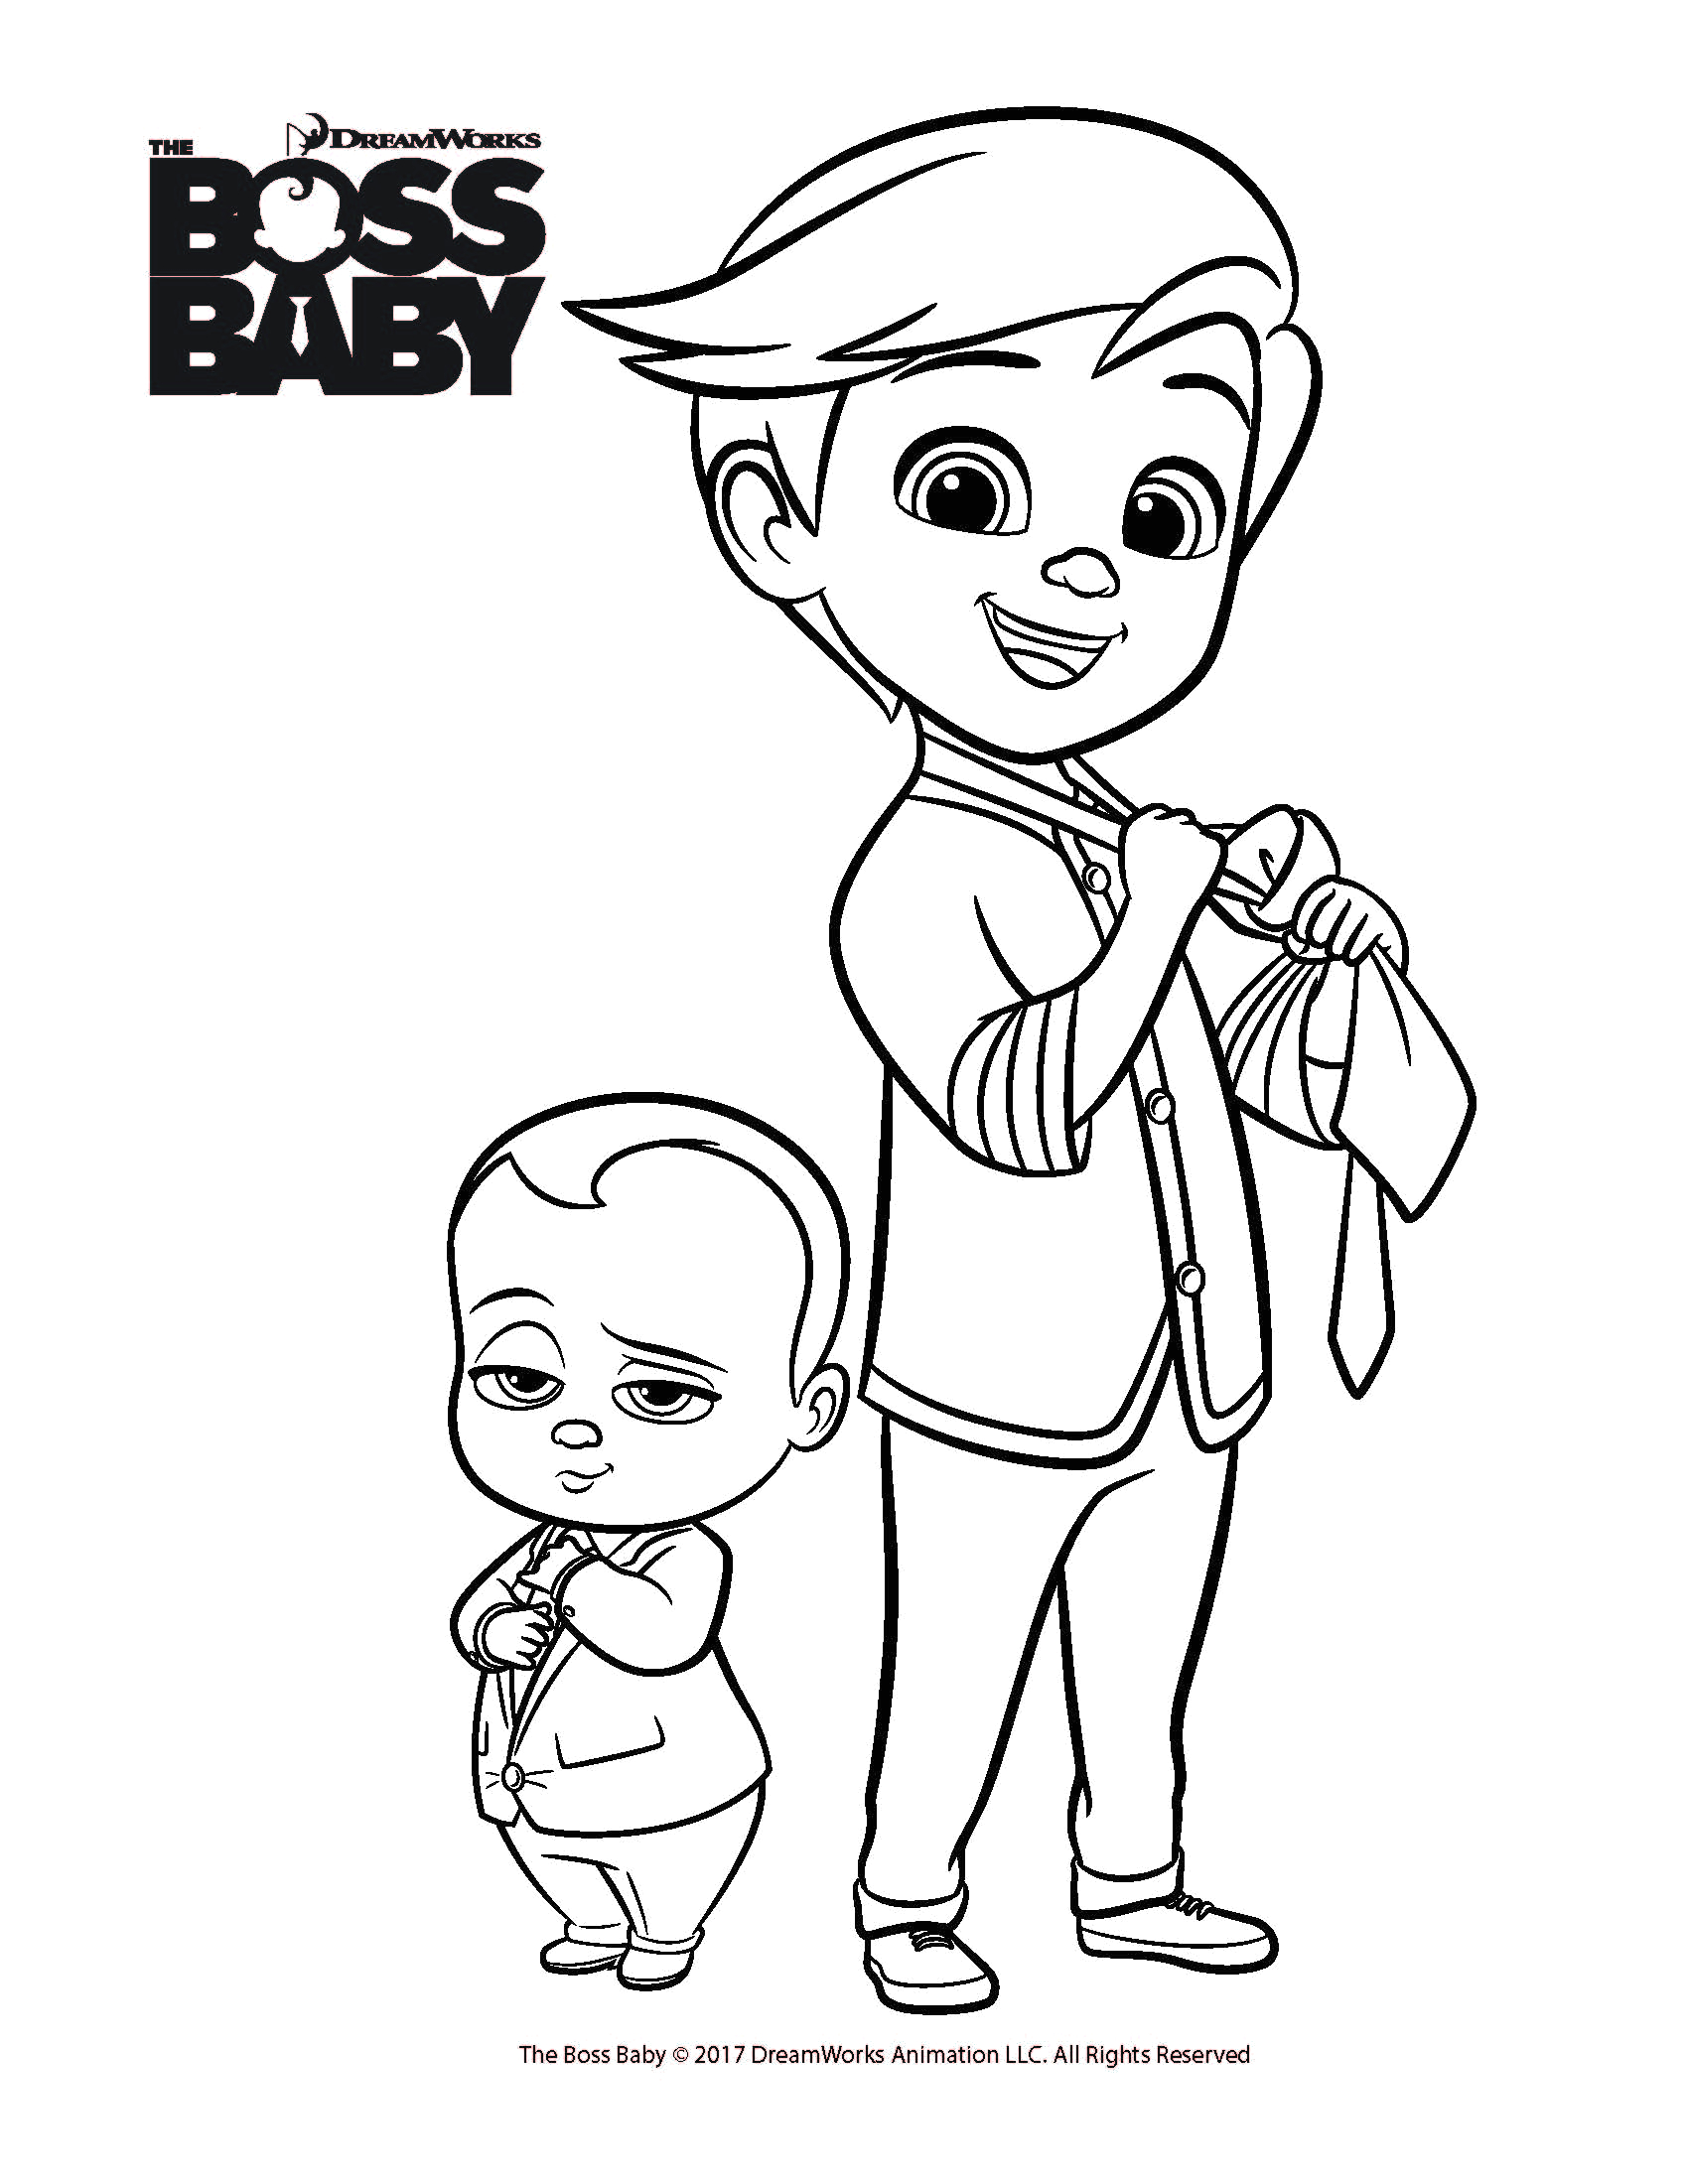 Boss Baby Back In Business Coloring Pages Free Coloring Printables for the Boss Baby From Dreamworks